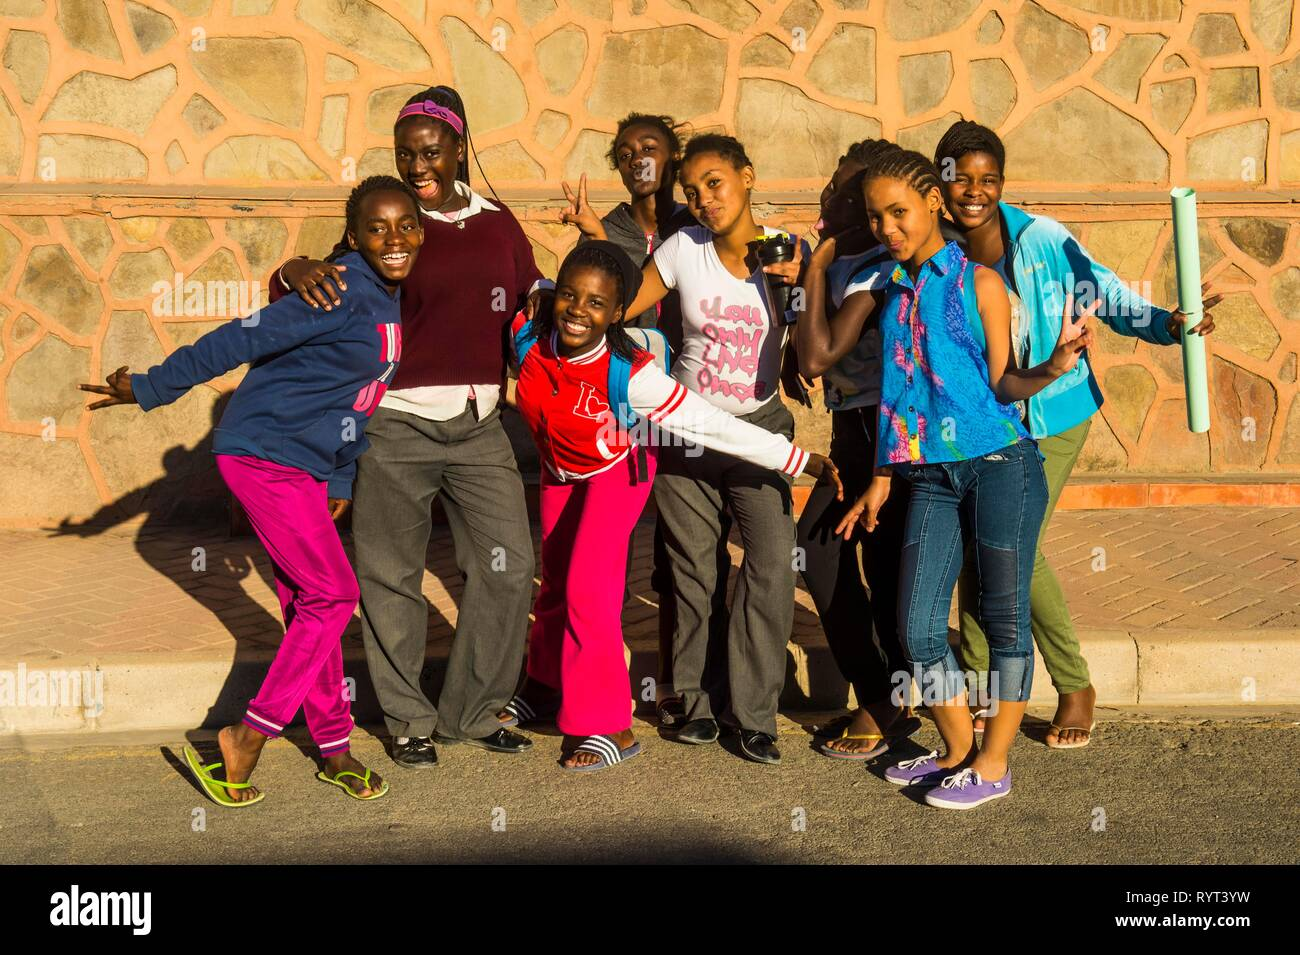 Children posing happily for the camera, Lüderitz, Namibia - Stock Image